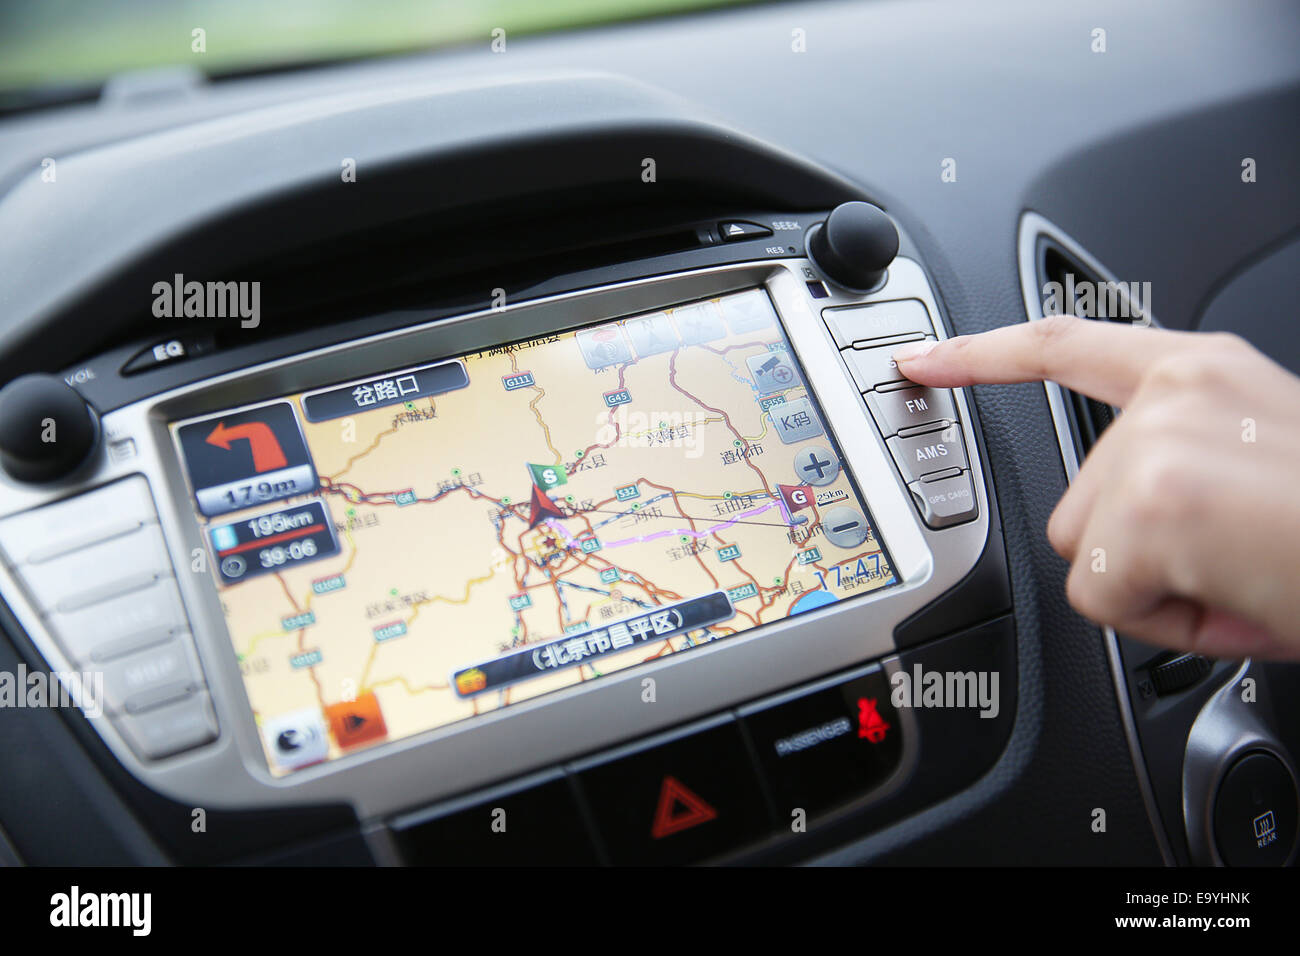 Human finger pointing to GPS map in a car - Stock Image